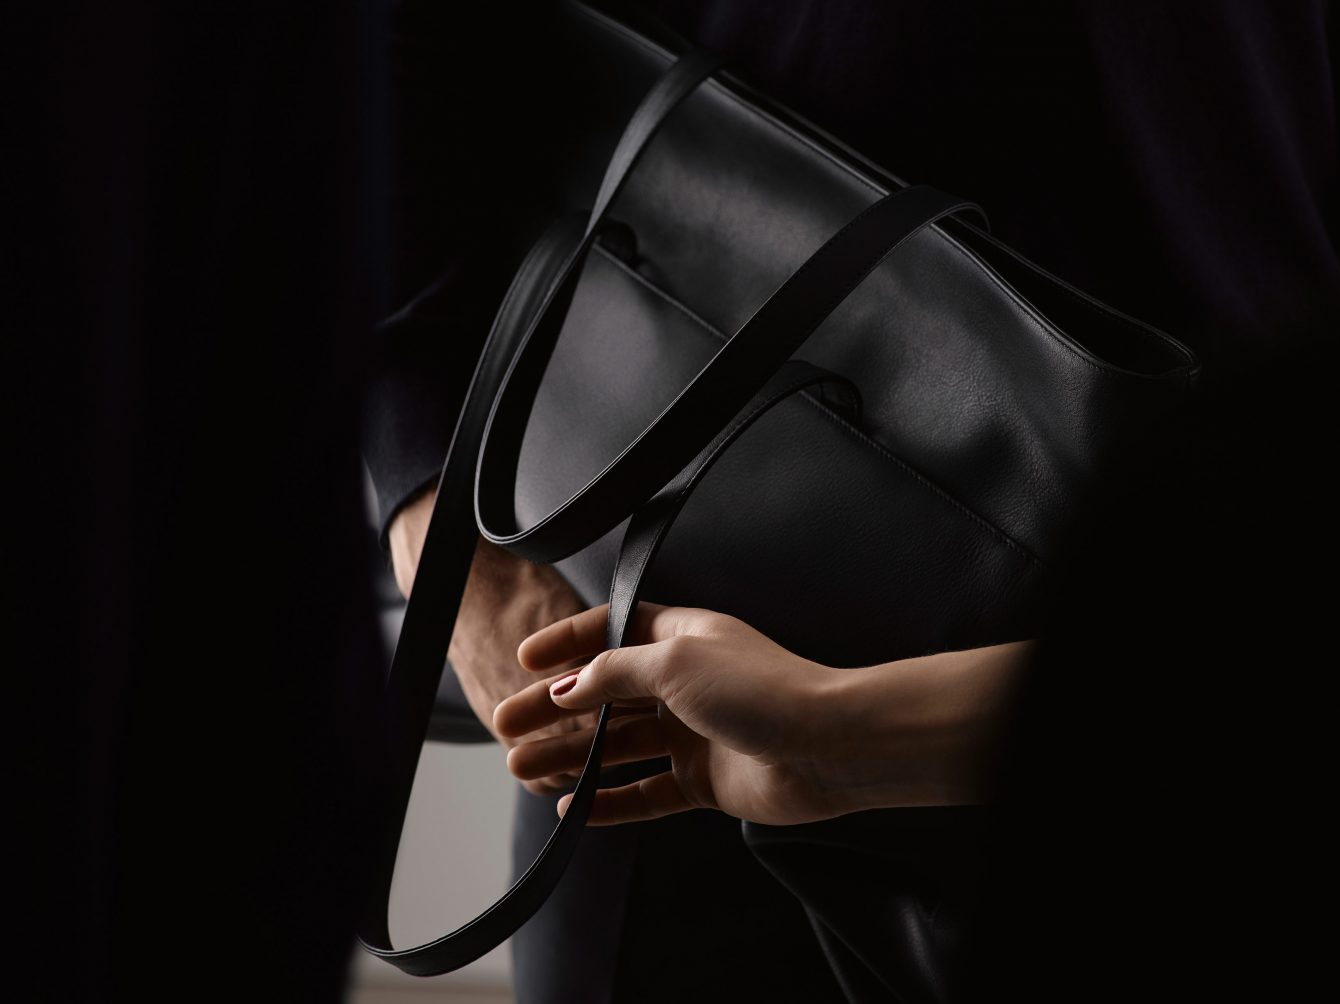 ISSUE 06 by Gerhardt Kellermann — ATLAS shoulder bag | TSATSAS